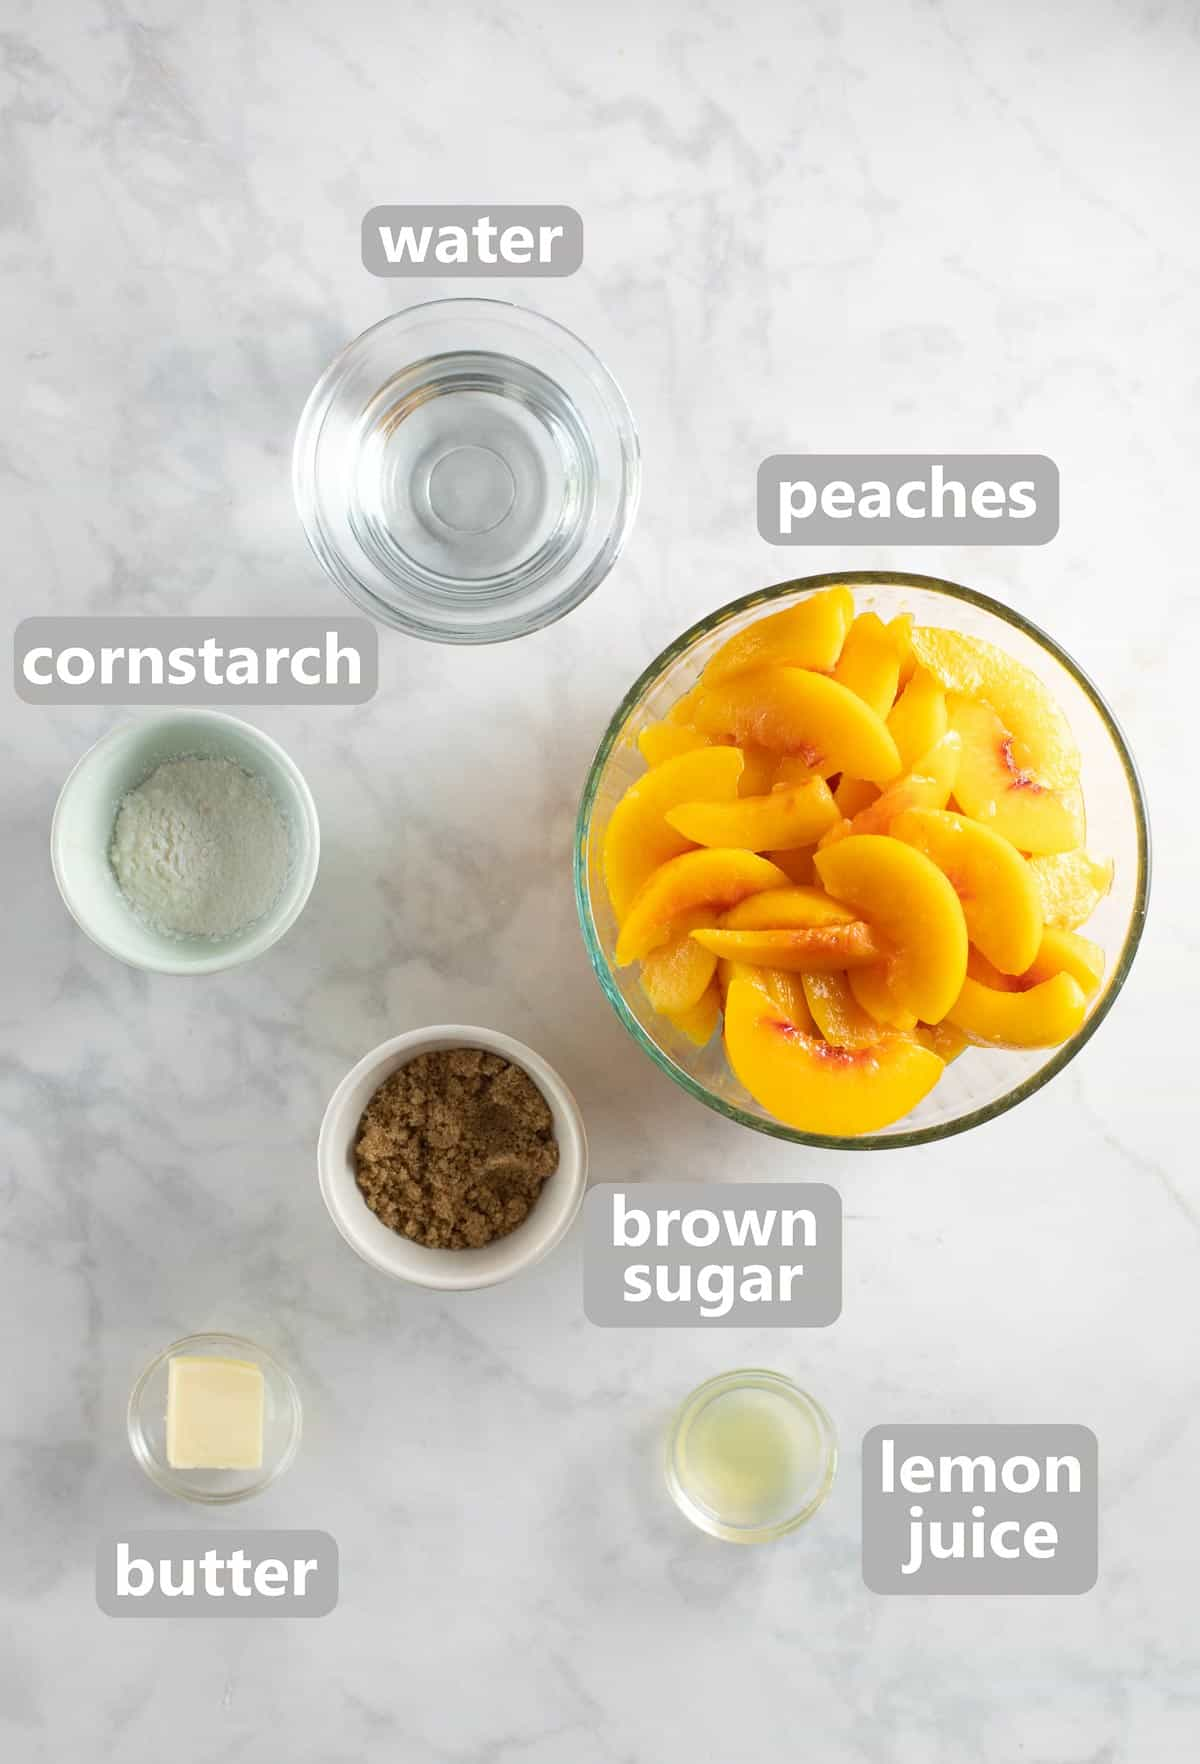 ingredients for peach cobbler filling in bowls on marble background